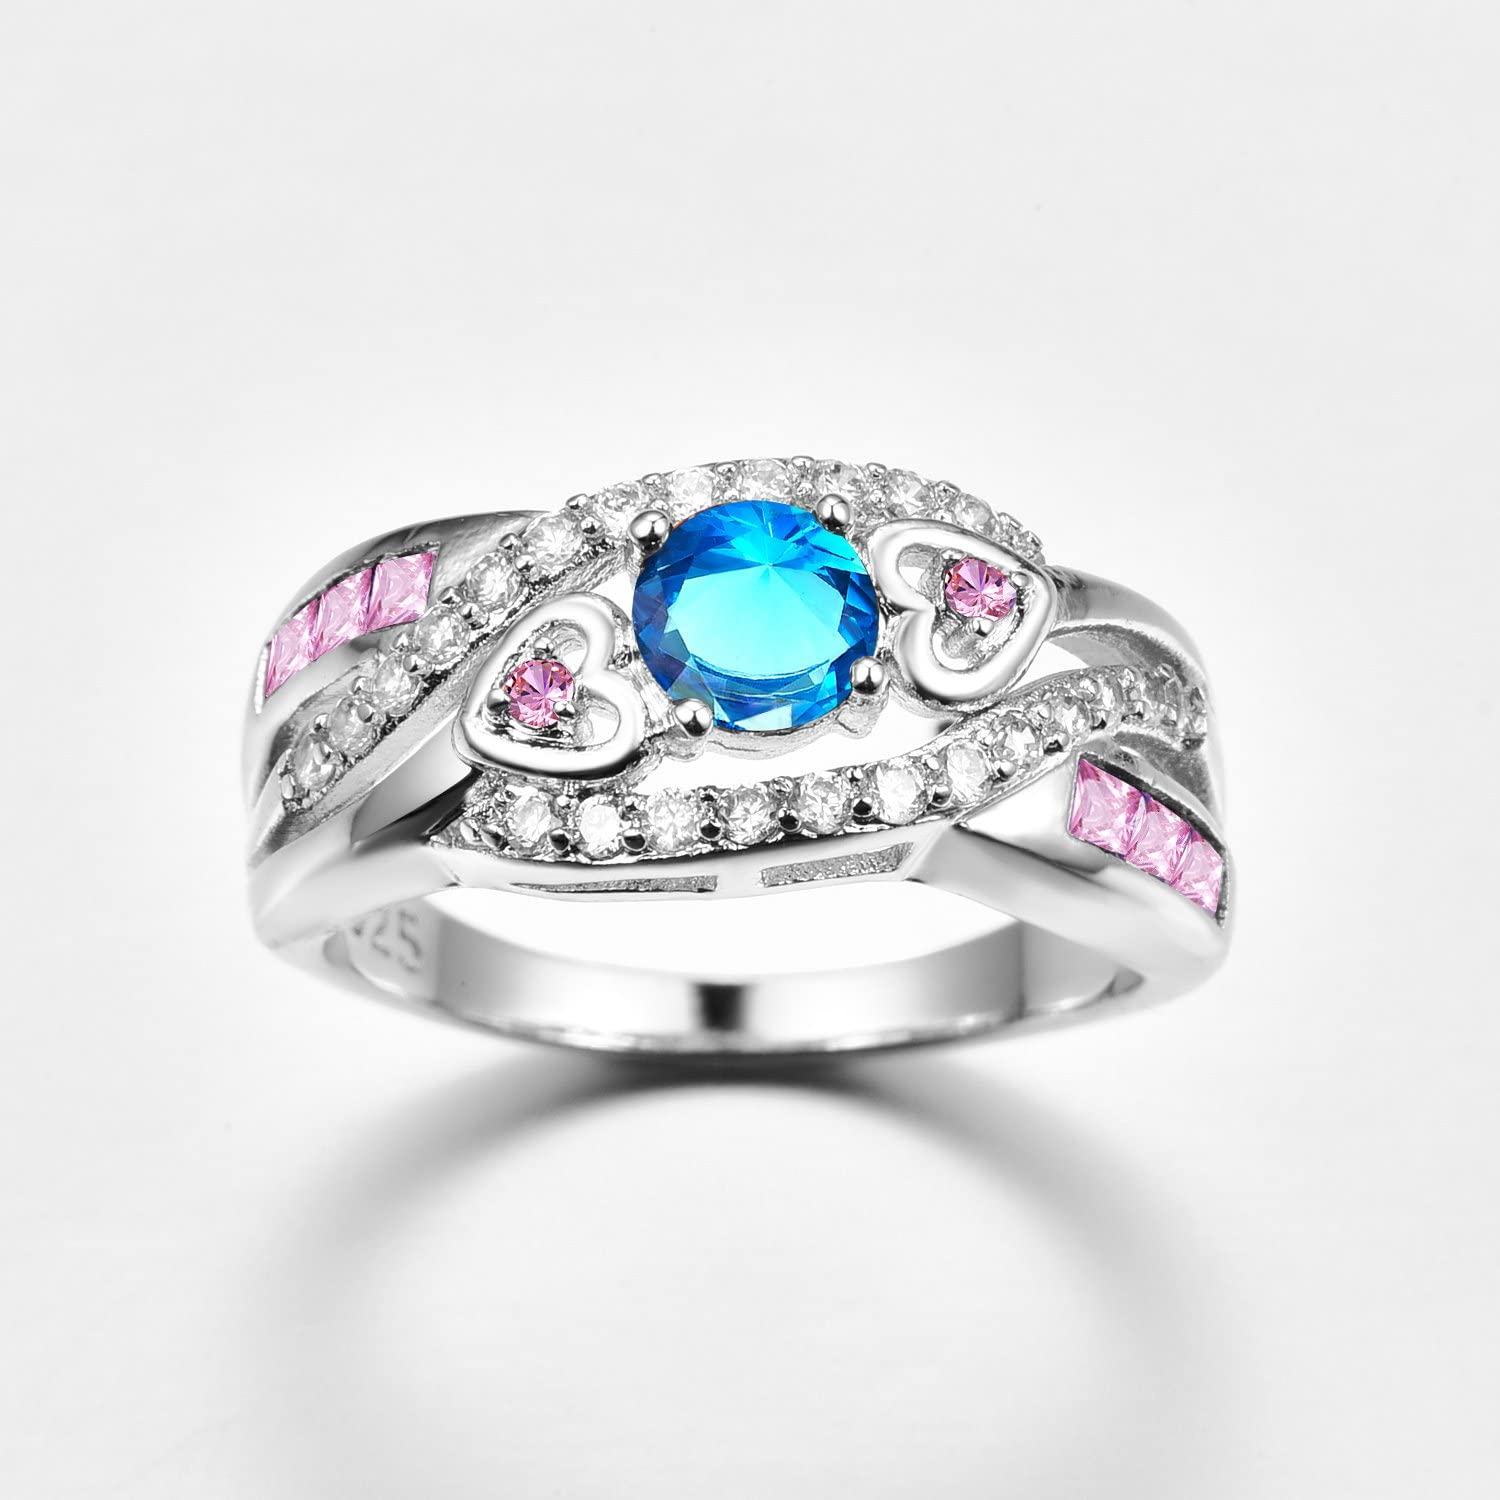 Veunora 925 Sterling Silver Created 5x5mm Rainbow Topaz and Amethyst Filled Twisted Ring Band for Women Size 8